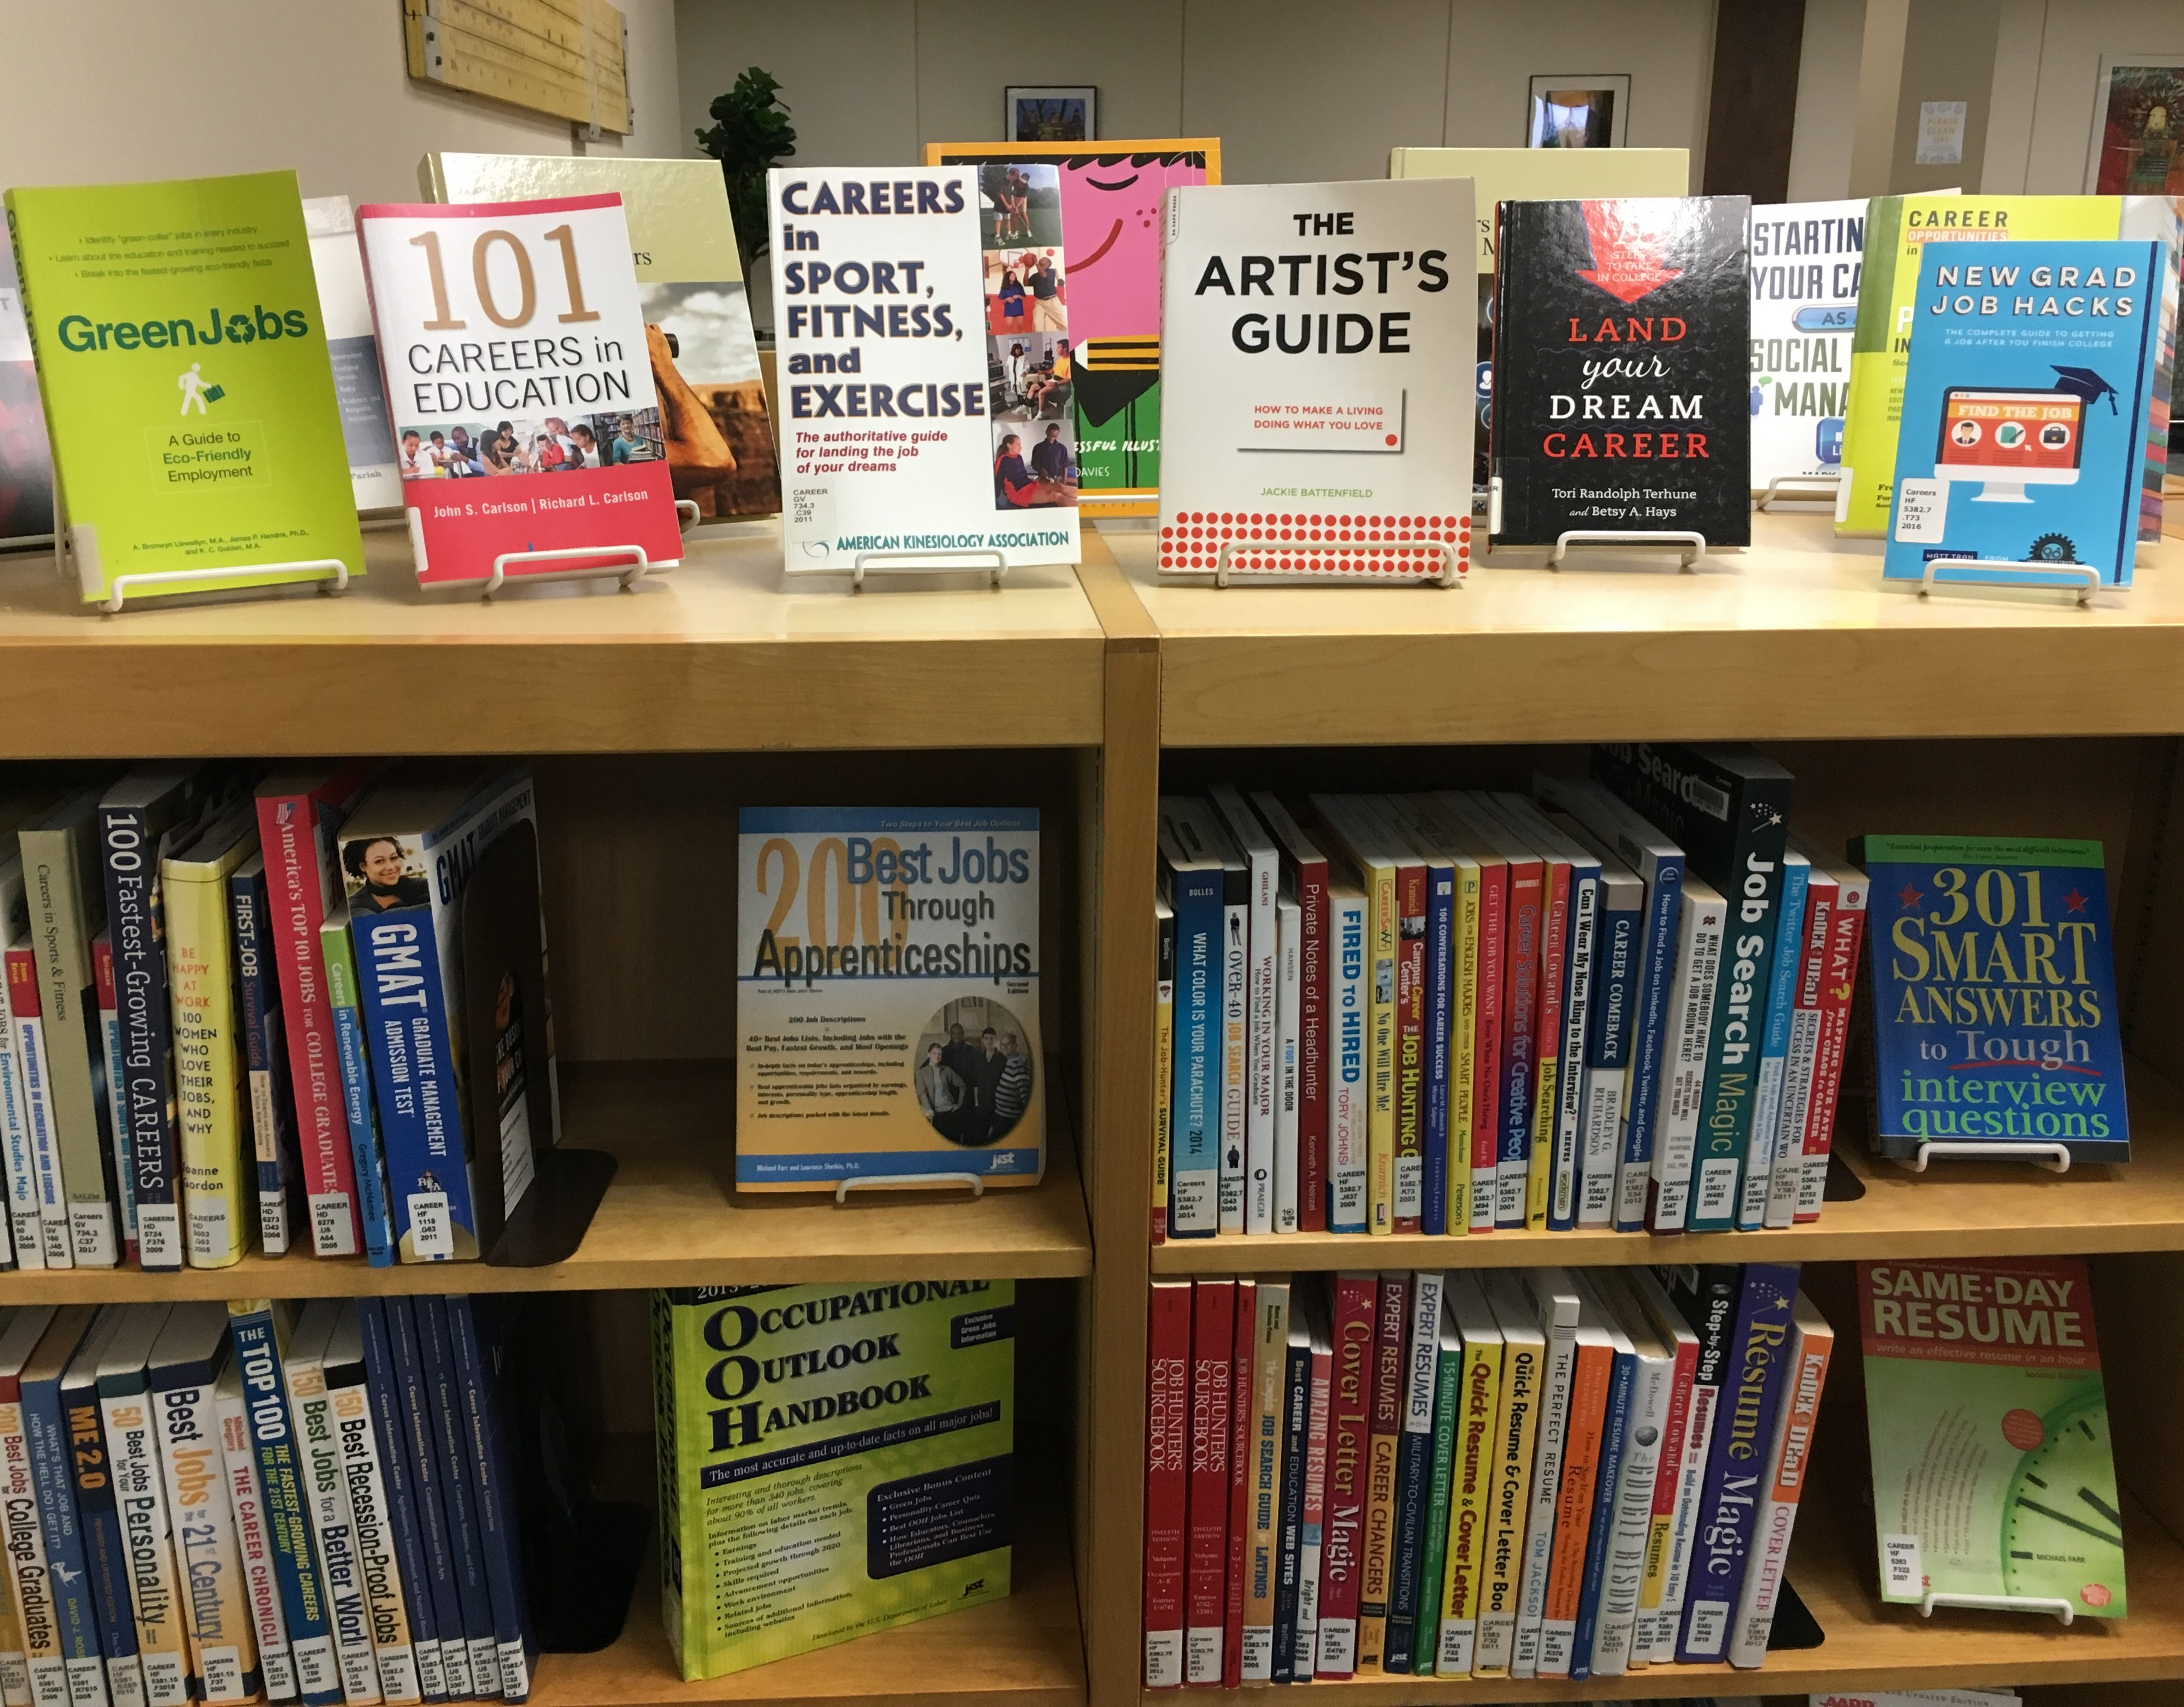 UWM at Waukesha Career Collection Bookshelf